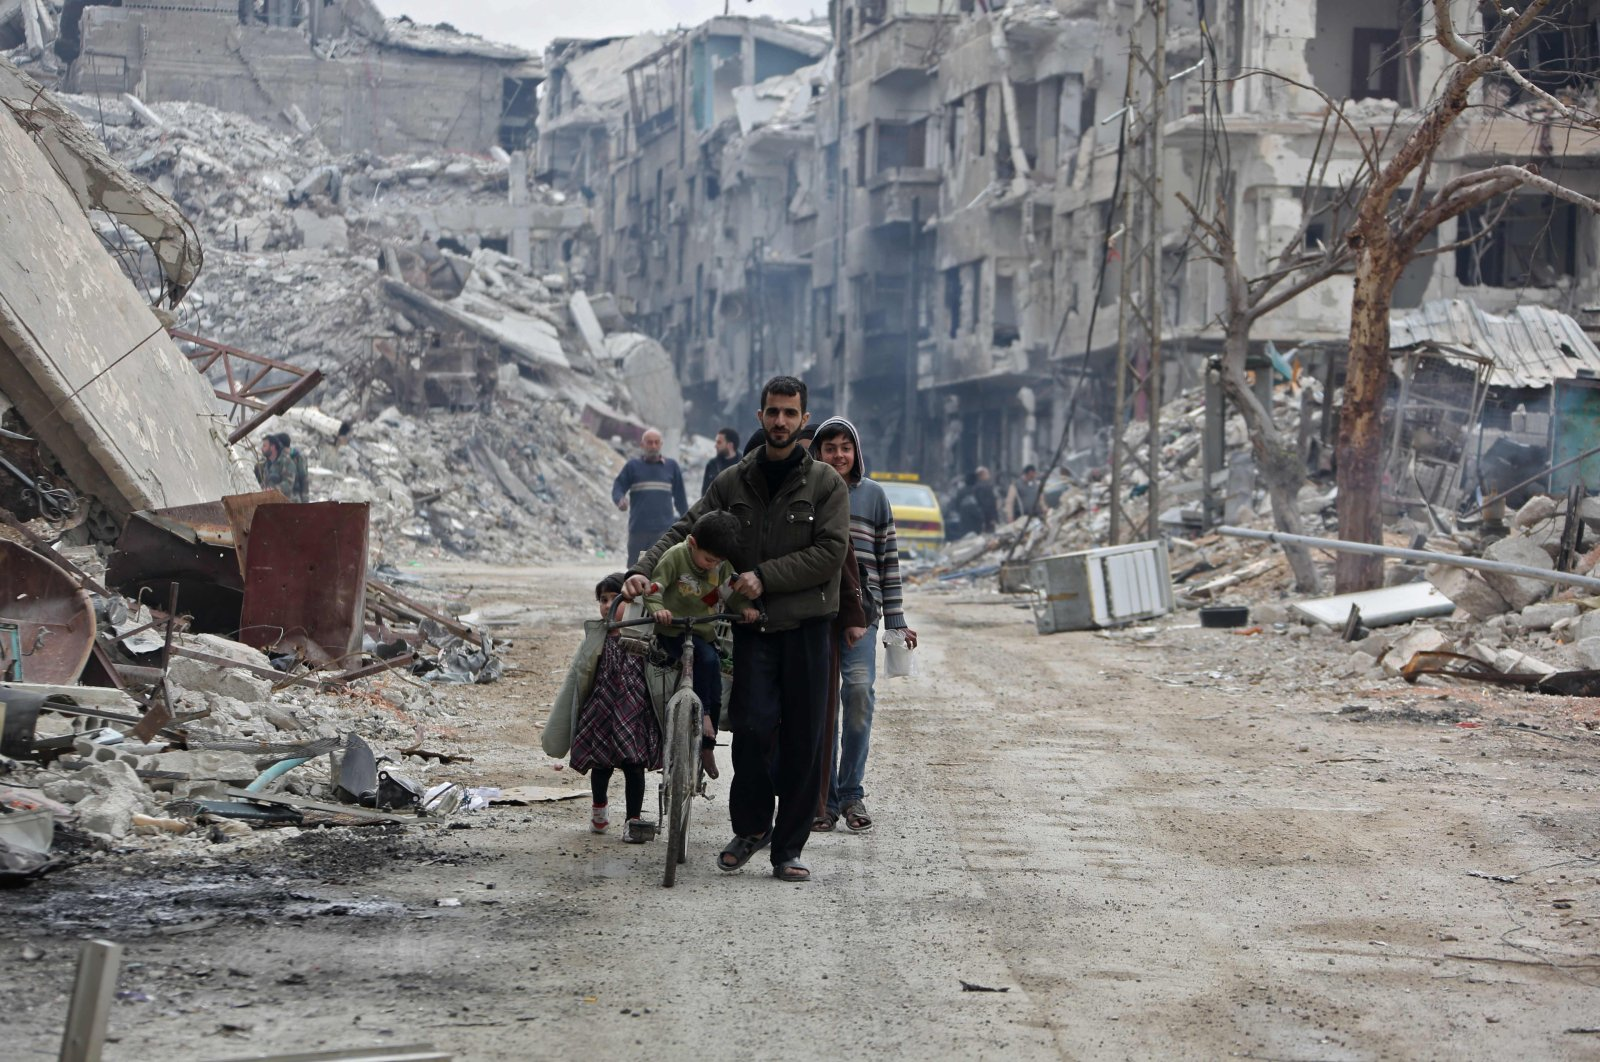 In this file photo taken on March 30, 2018, civilians walk in a destroyed neighborhood in the former opposition-held town of Harasta in eastern Ghouta, a week after regime forces retook the town from the opposition. (AFP Photo)